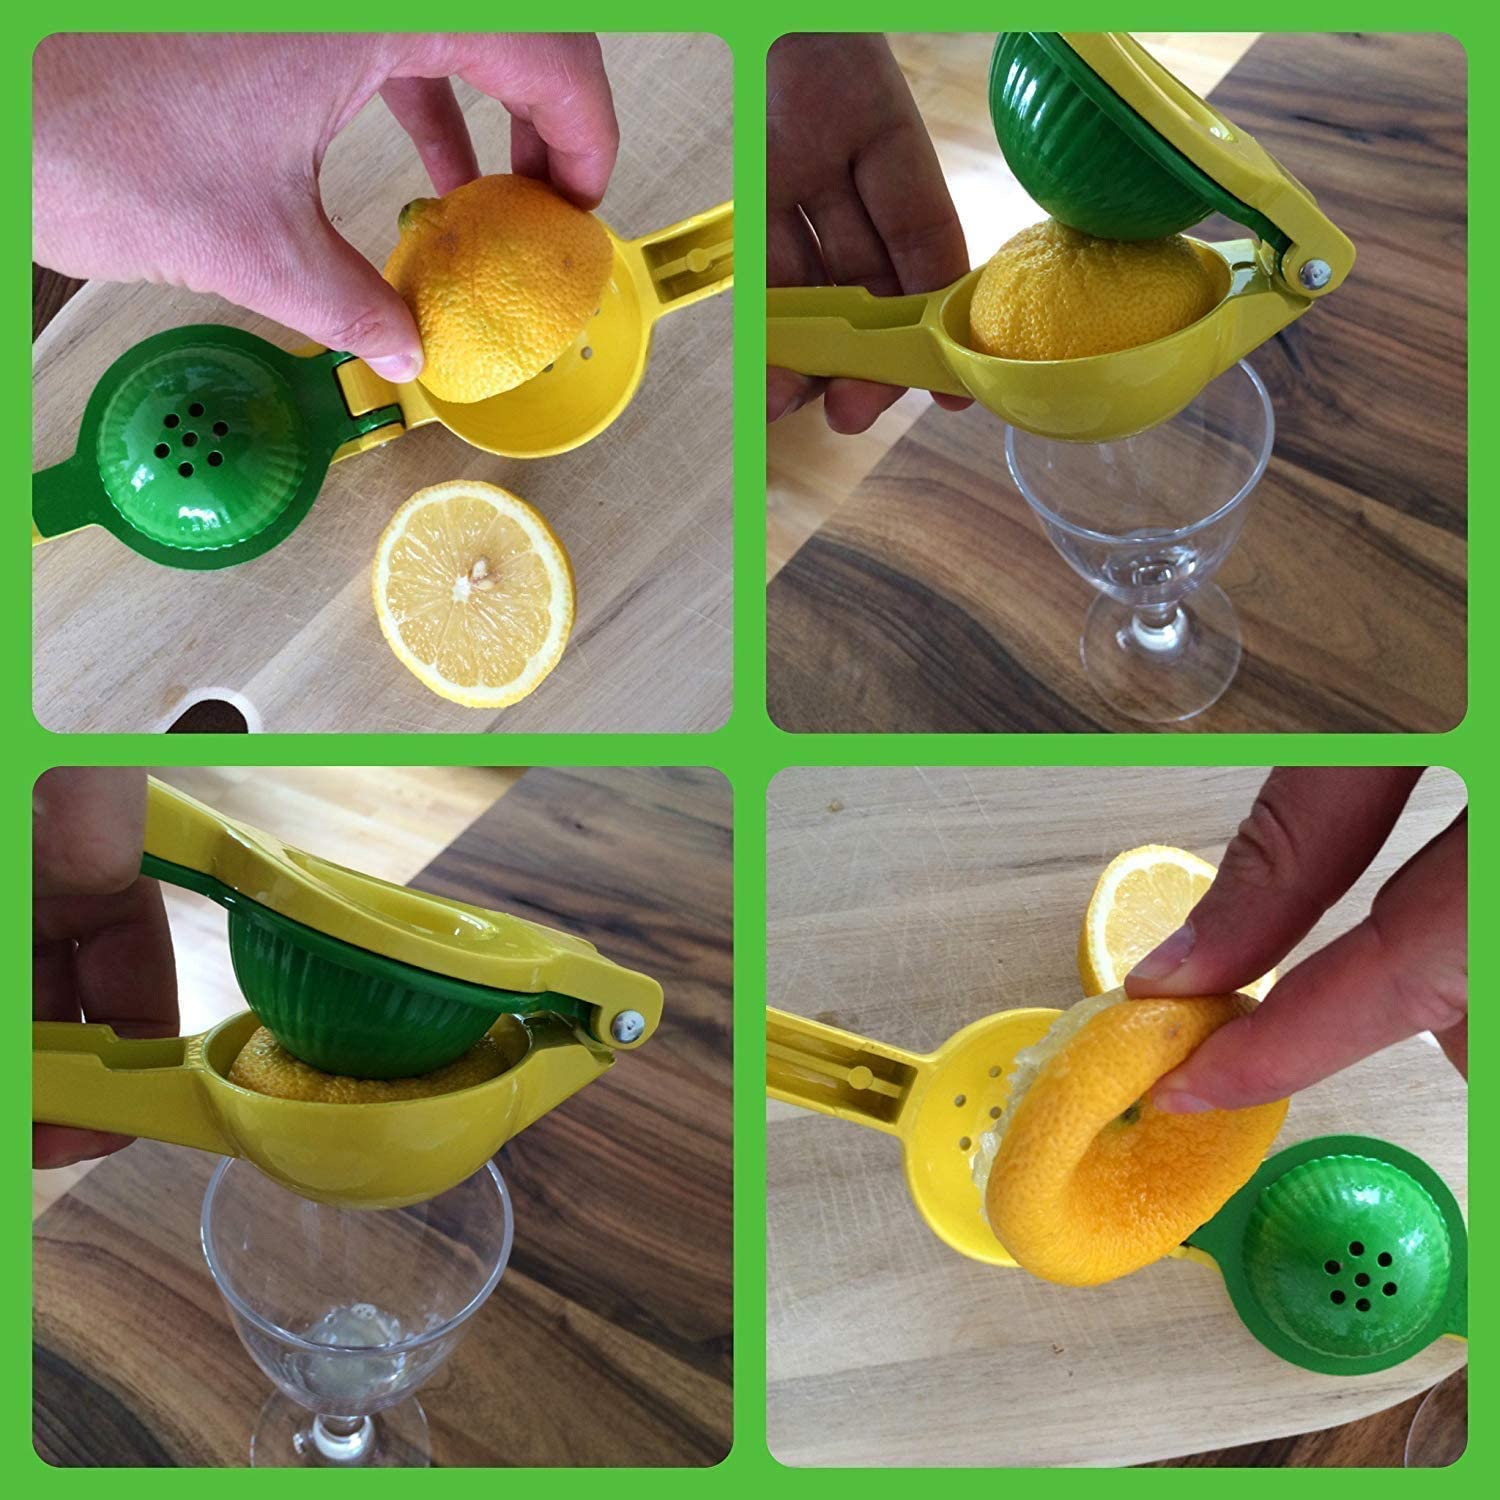 Manual Juicers Small Quality Stainless Steel Lemon Squeezer,Manual ...